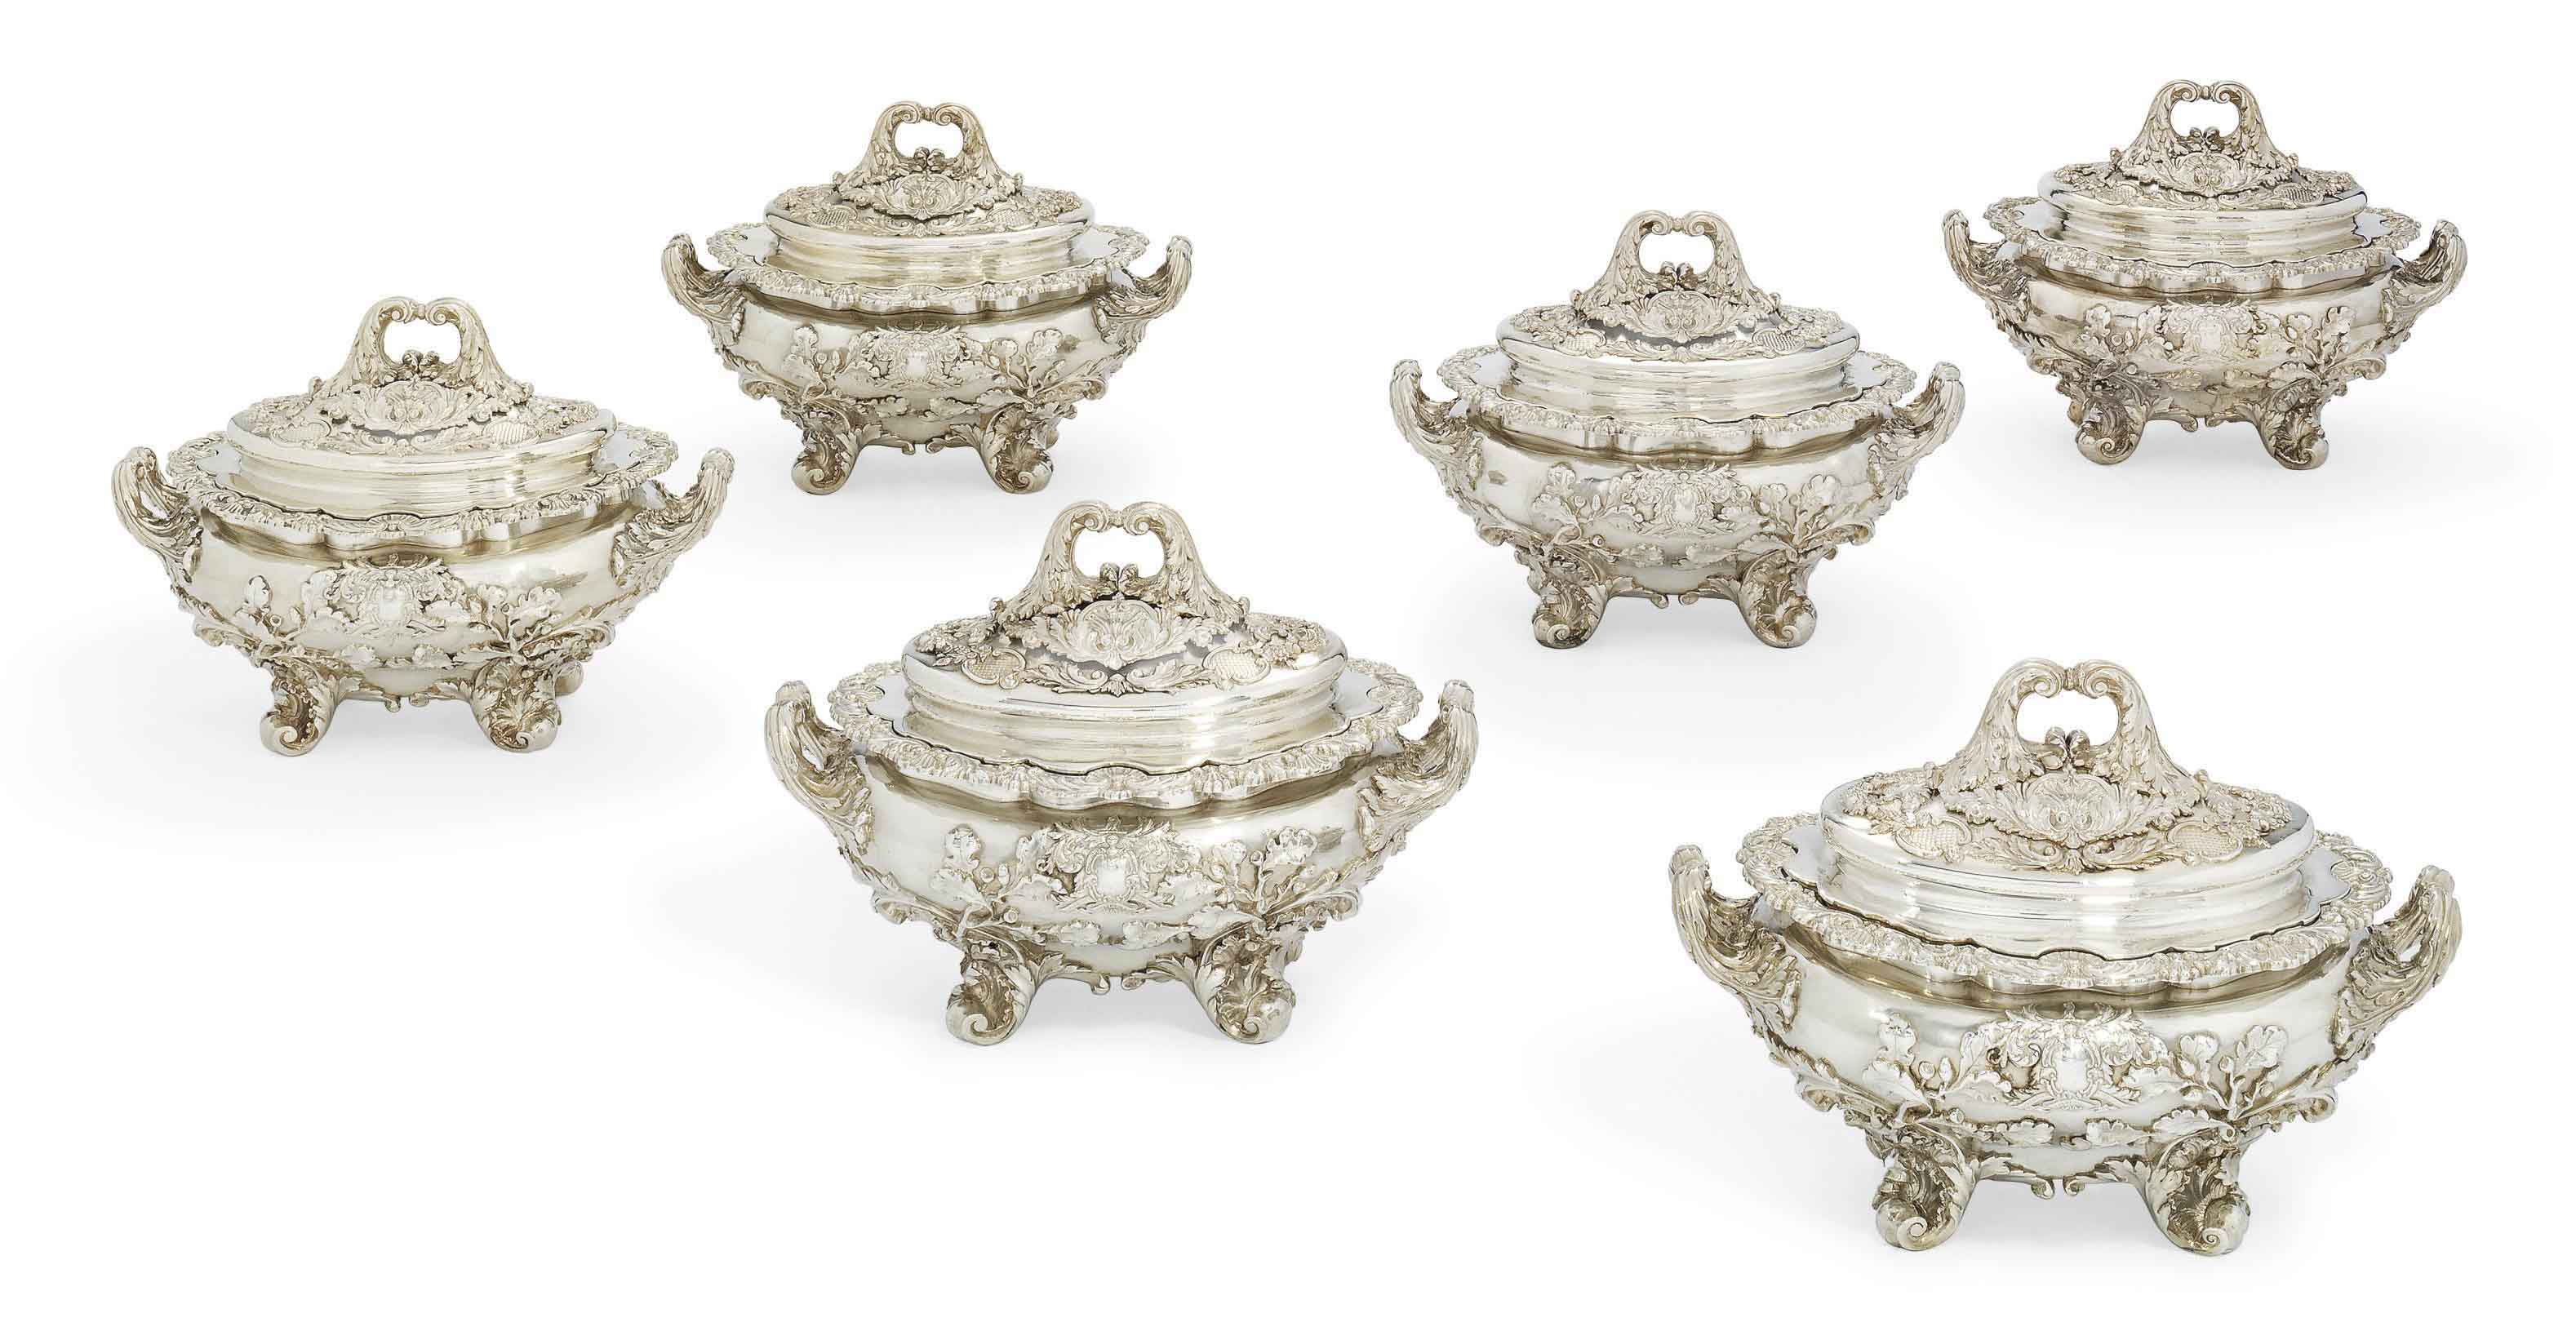 A SET OF SIX GEORGE III SILVER SAUCE-TUREENS, COVERS AND LINERS FROM THE SUTTON SERVICE